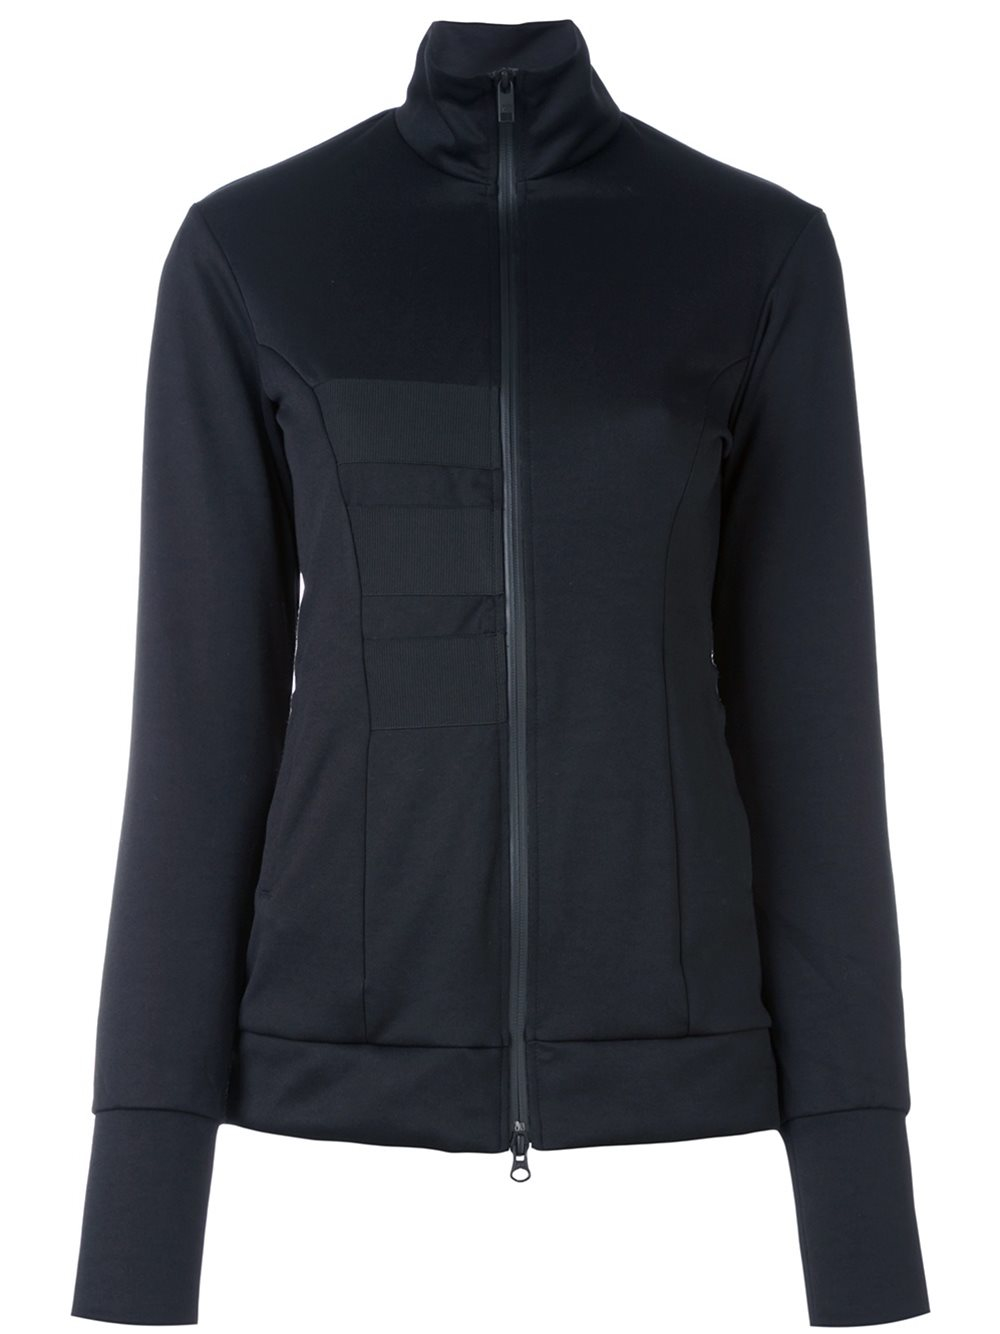 Find your adidas Women Black Sport Jackets at dexterminduwi.ga All styles and colors available in the official adidas online store.